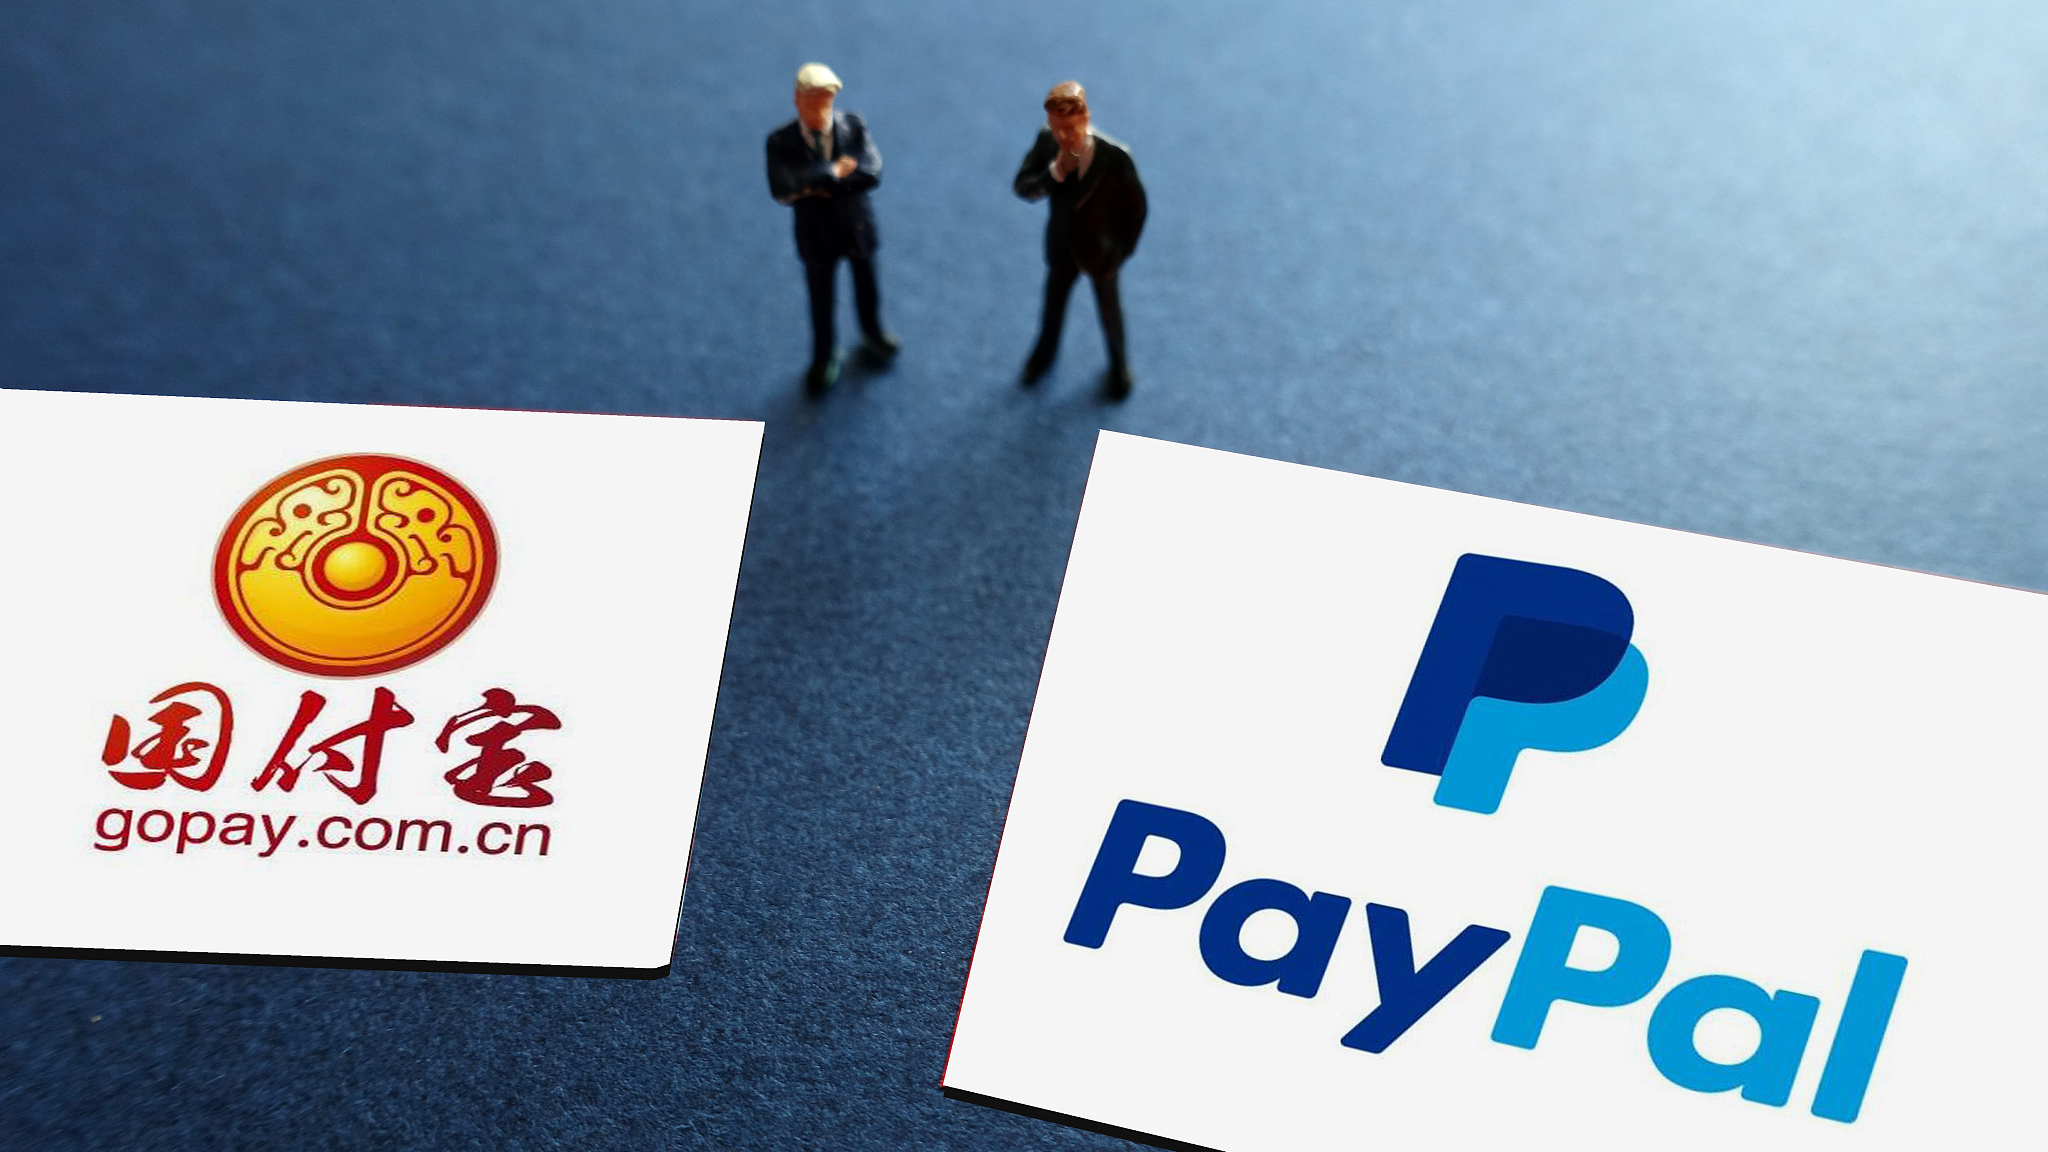 Can Paypal make inroads in China's vast digital payments market?